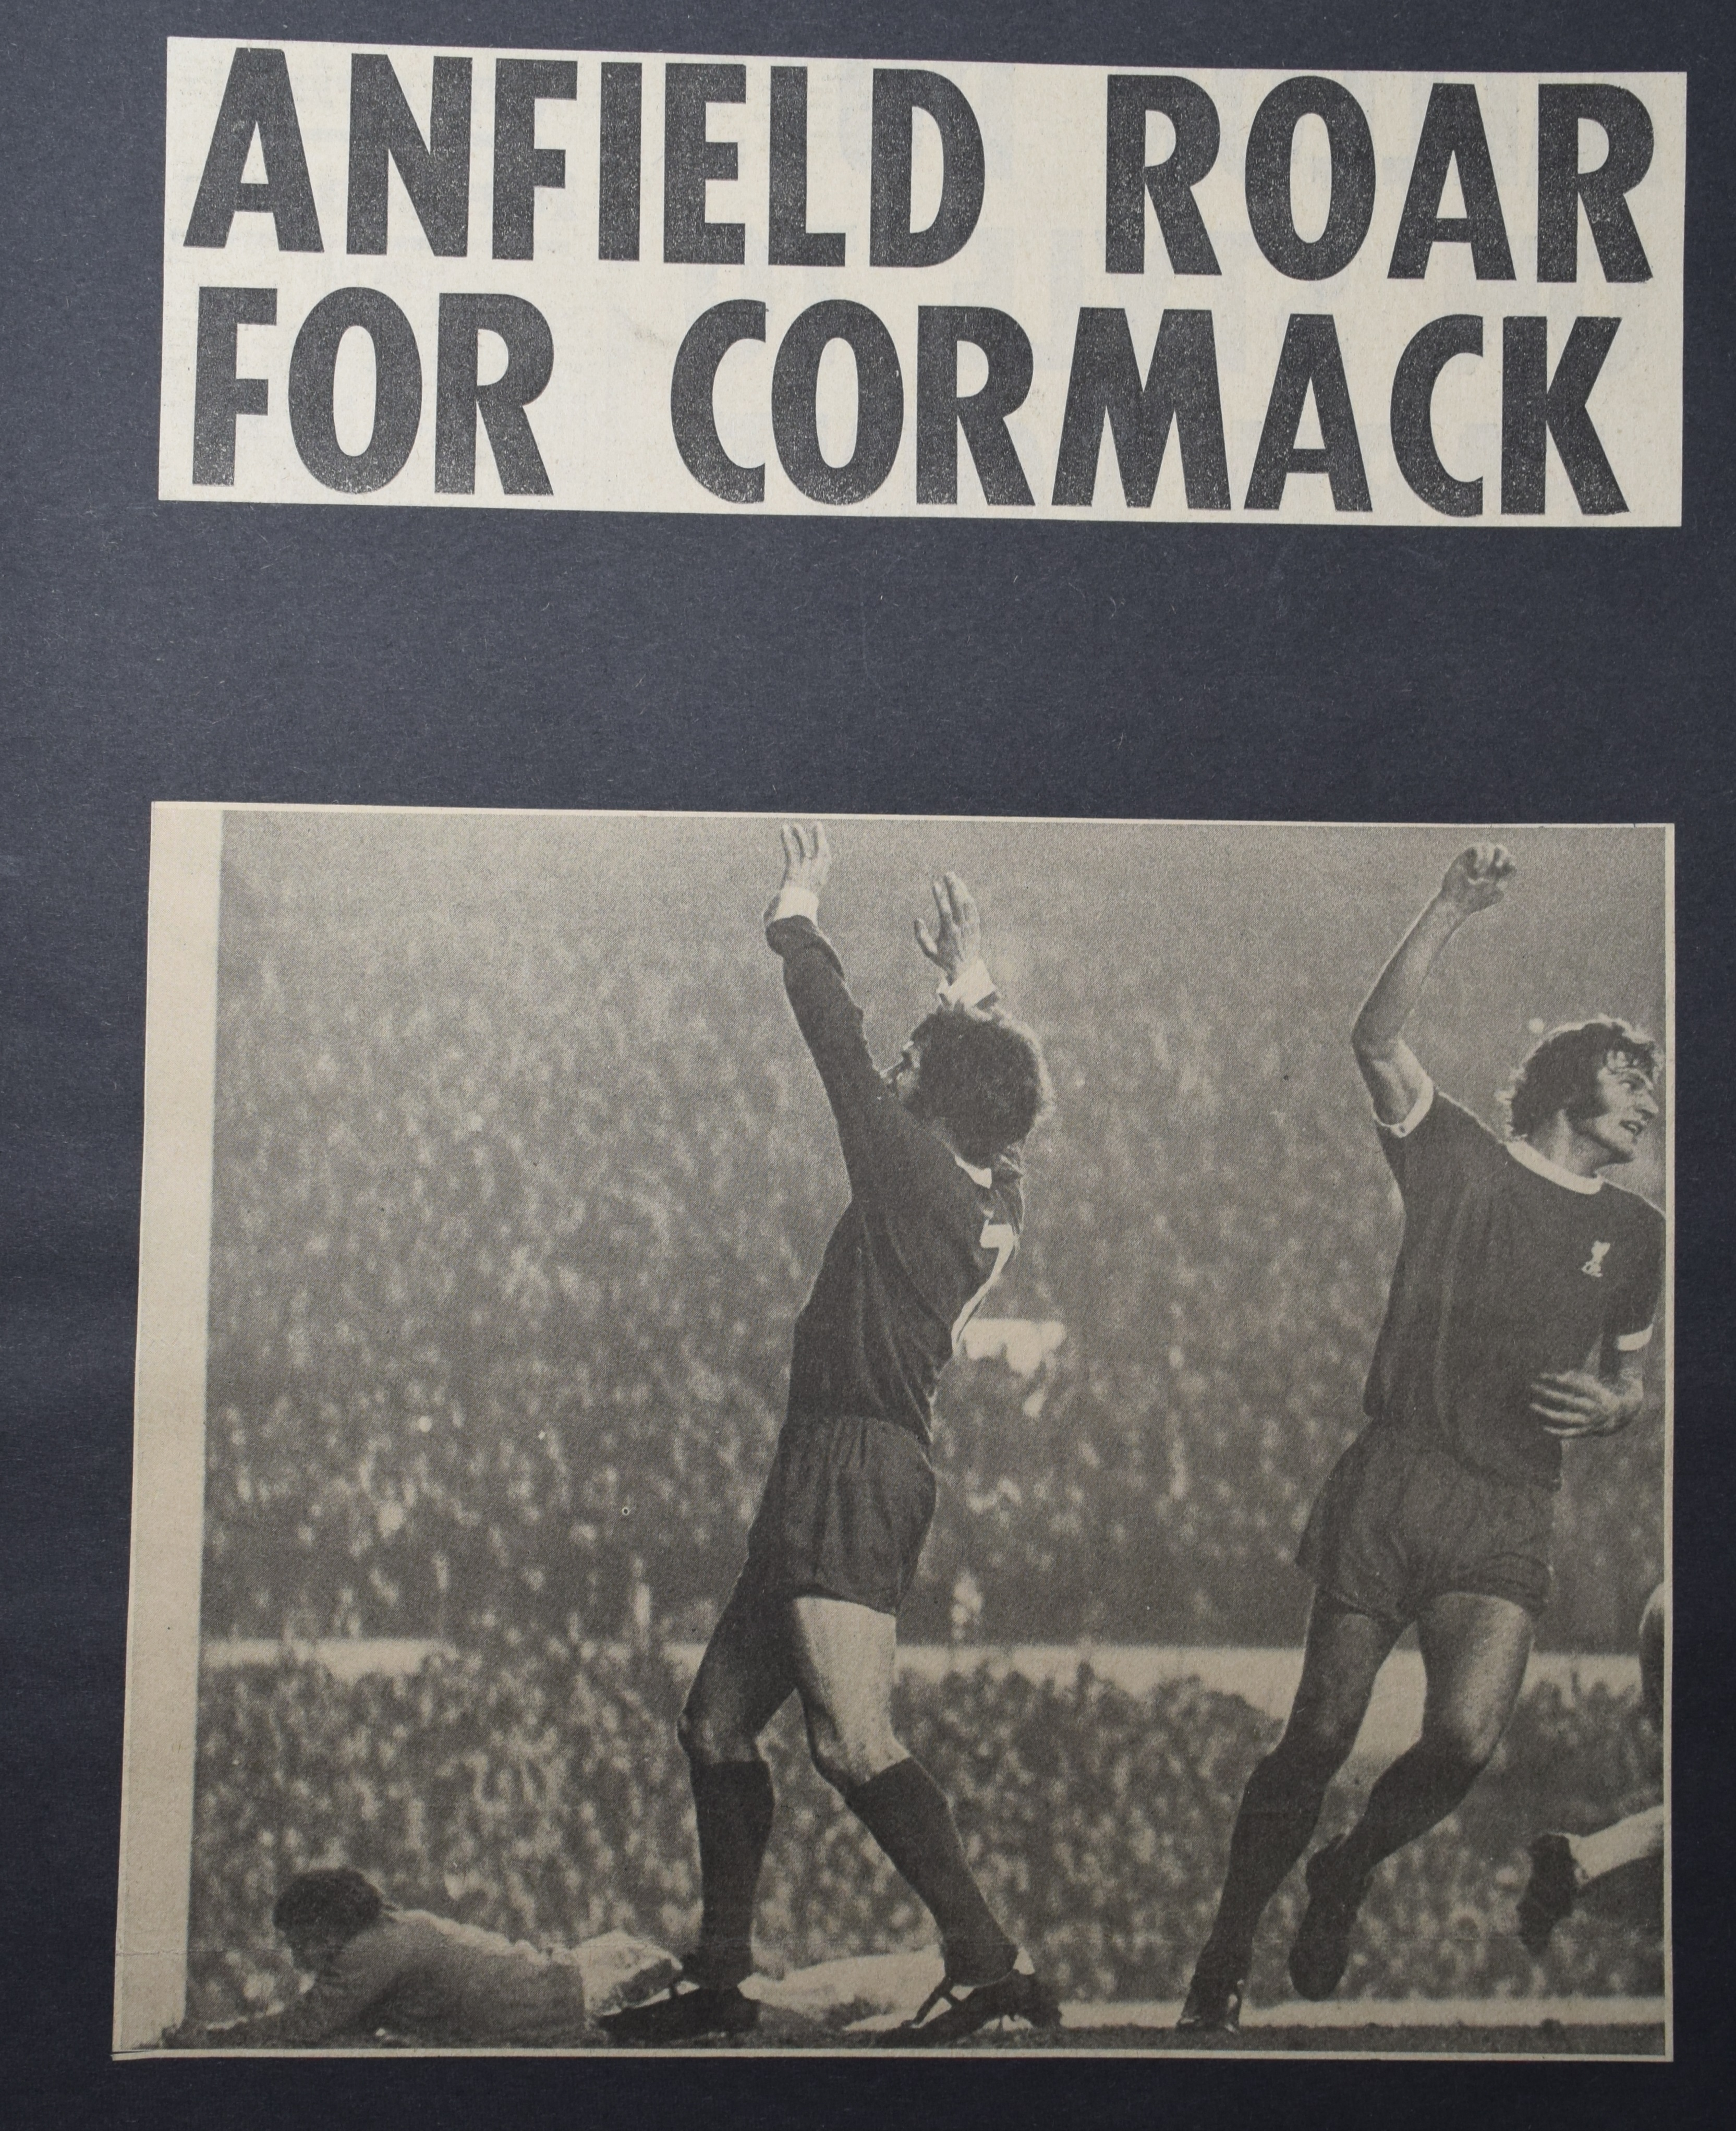 Anfield roar for Cormack! - 30 December 1972